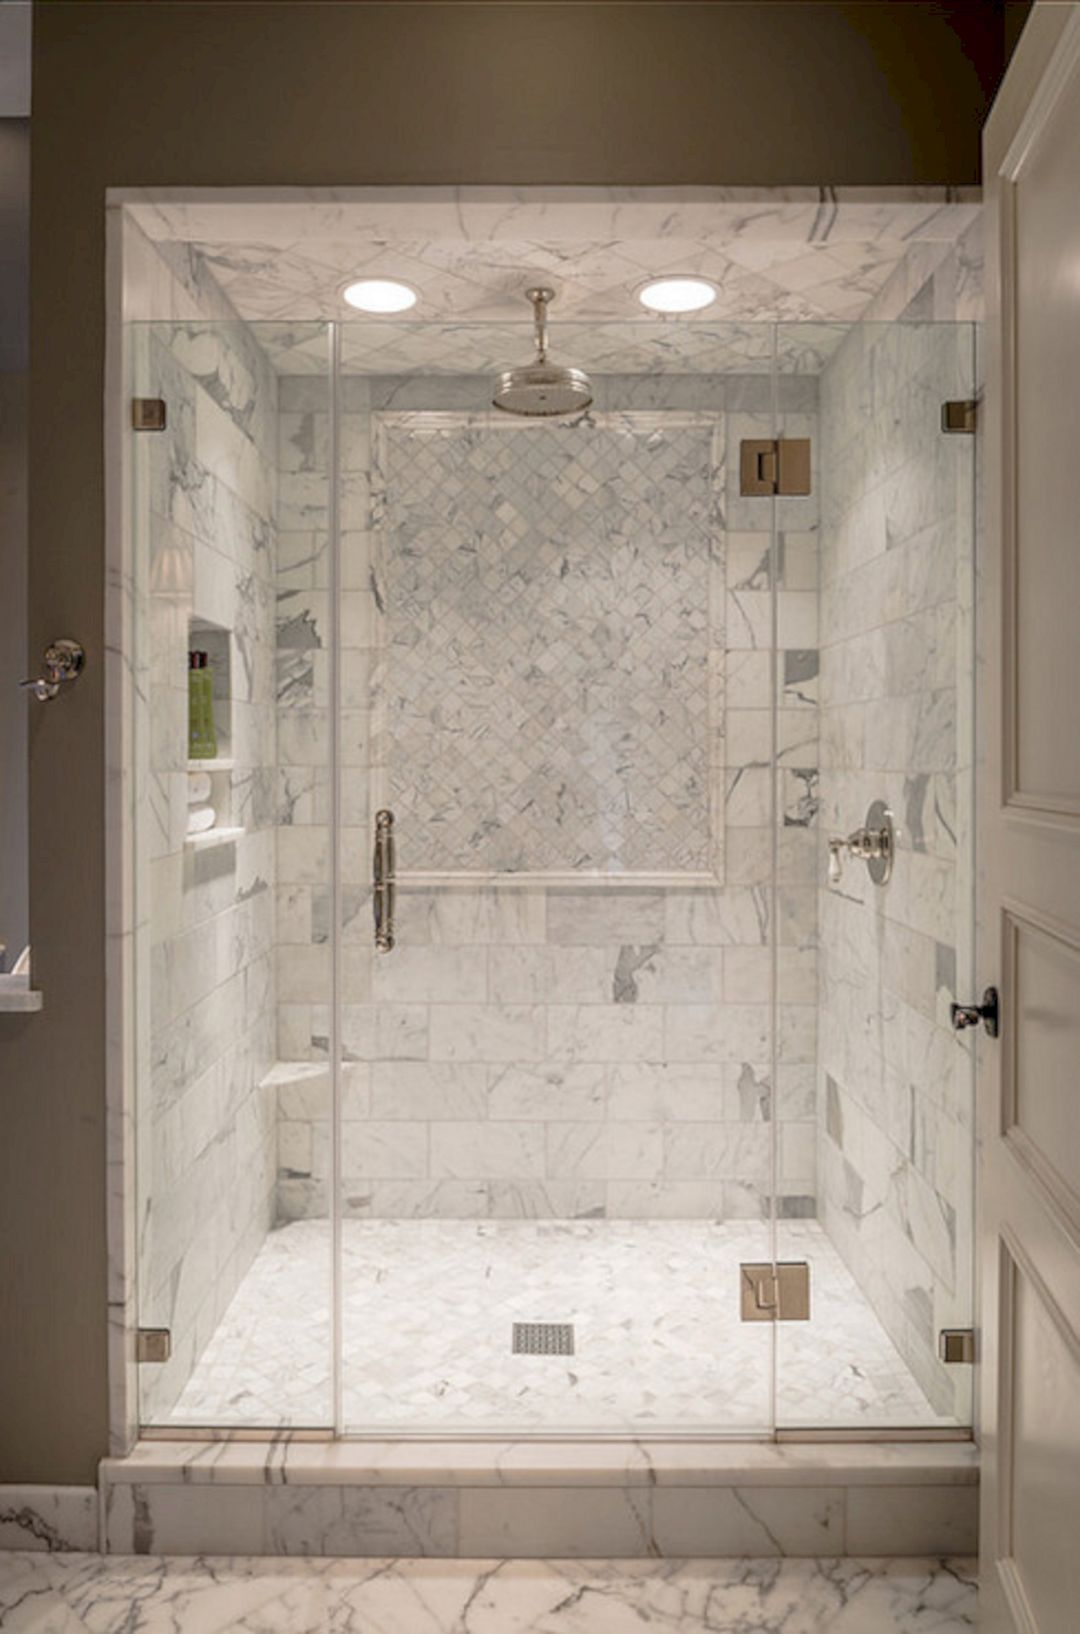 Stunning 20 Marble Shower Tile Design for Cozy Bathroom Ideas / FresHOUZ.com #bathroomtiledesigns